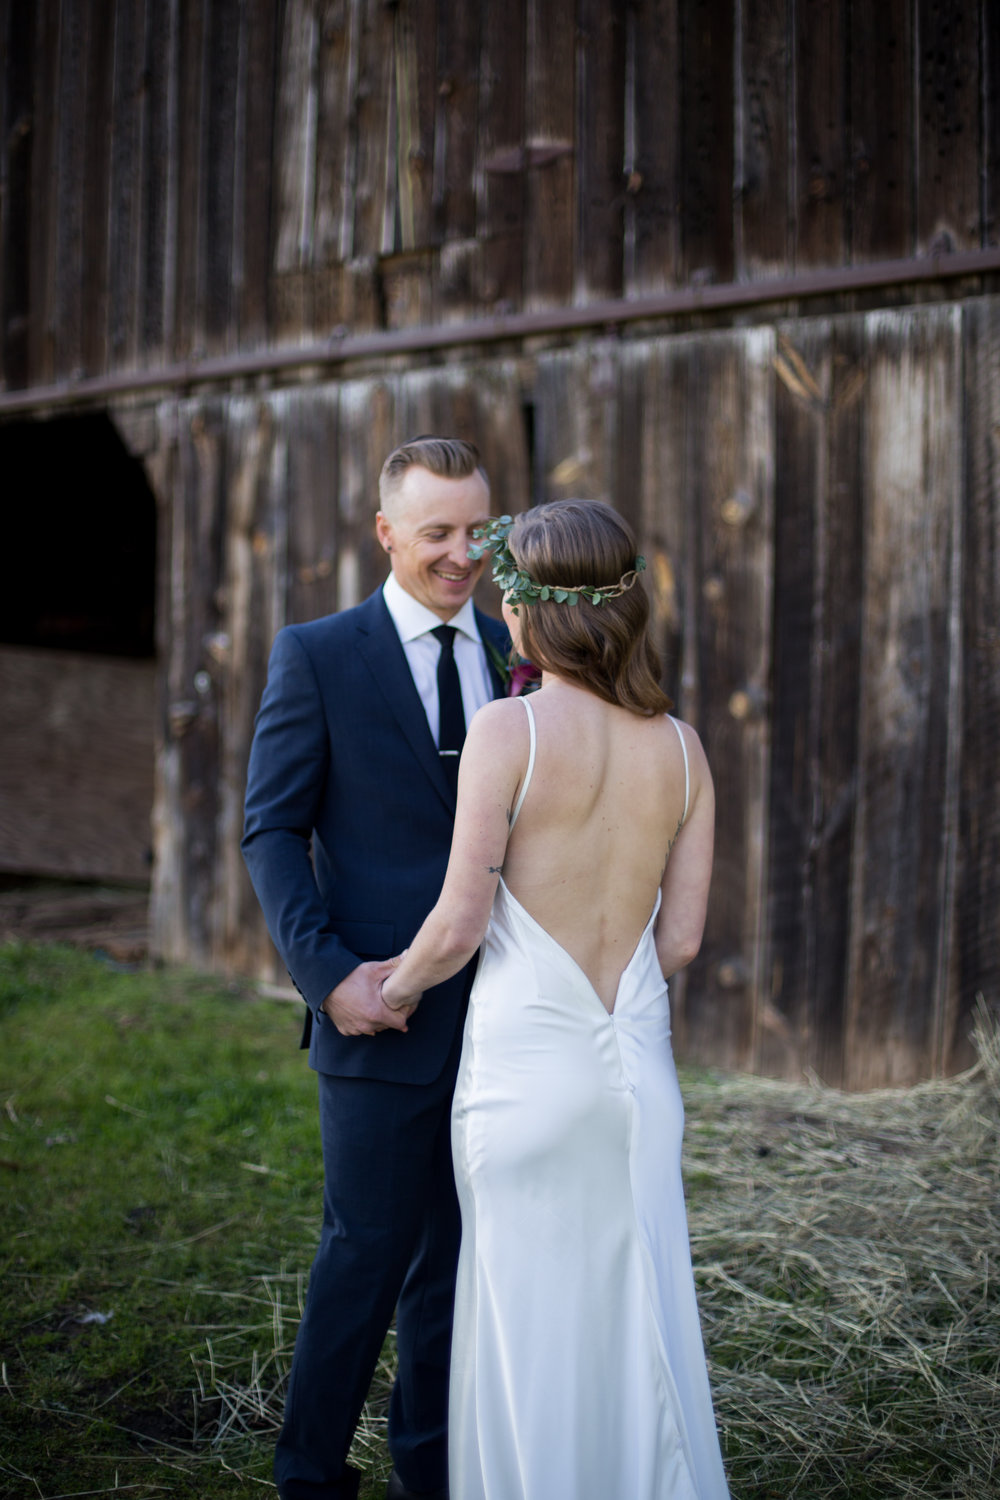 Perfect Salt Studio Oregon Wedding Photographer